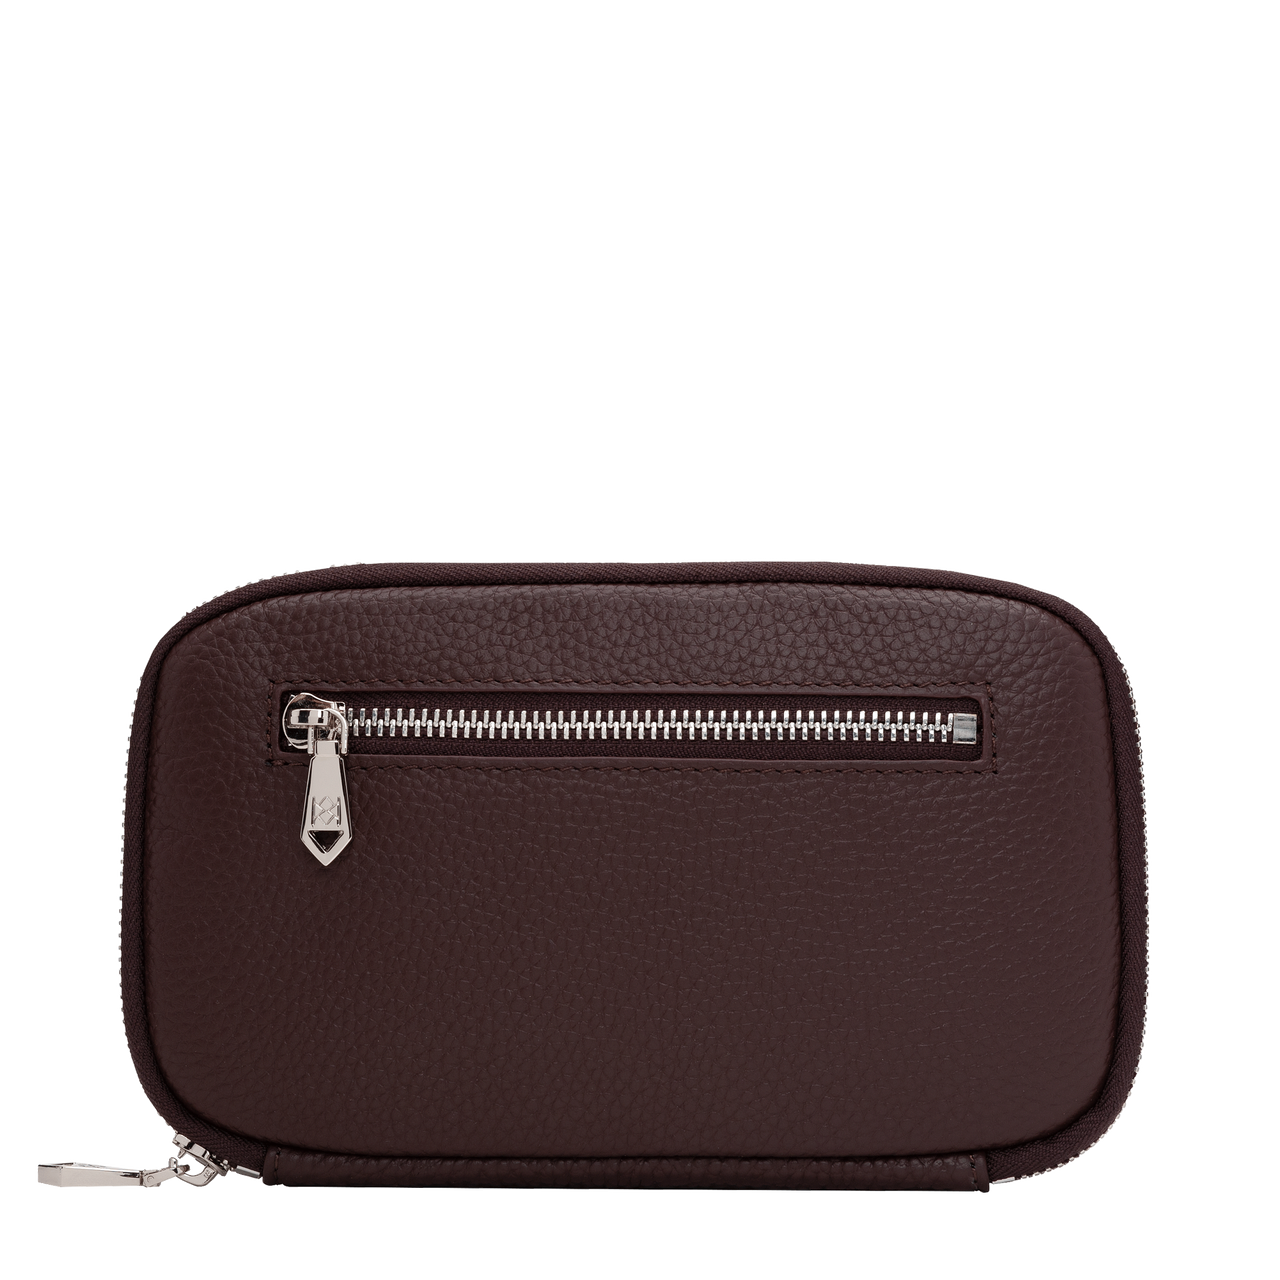 MADISON WALLET - CHOCOLATE